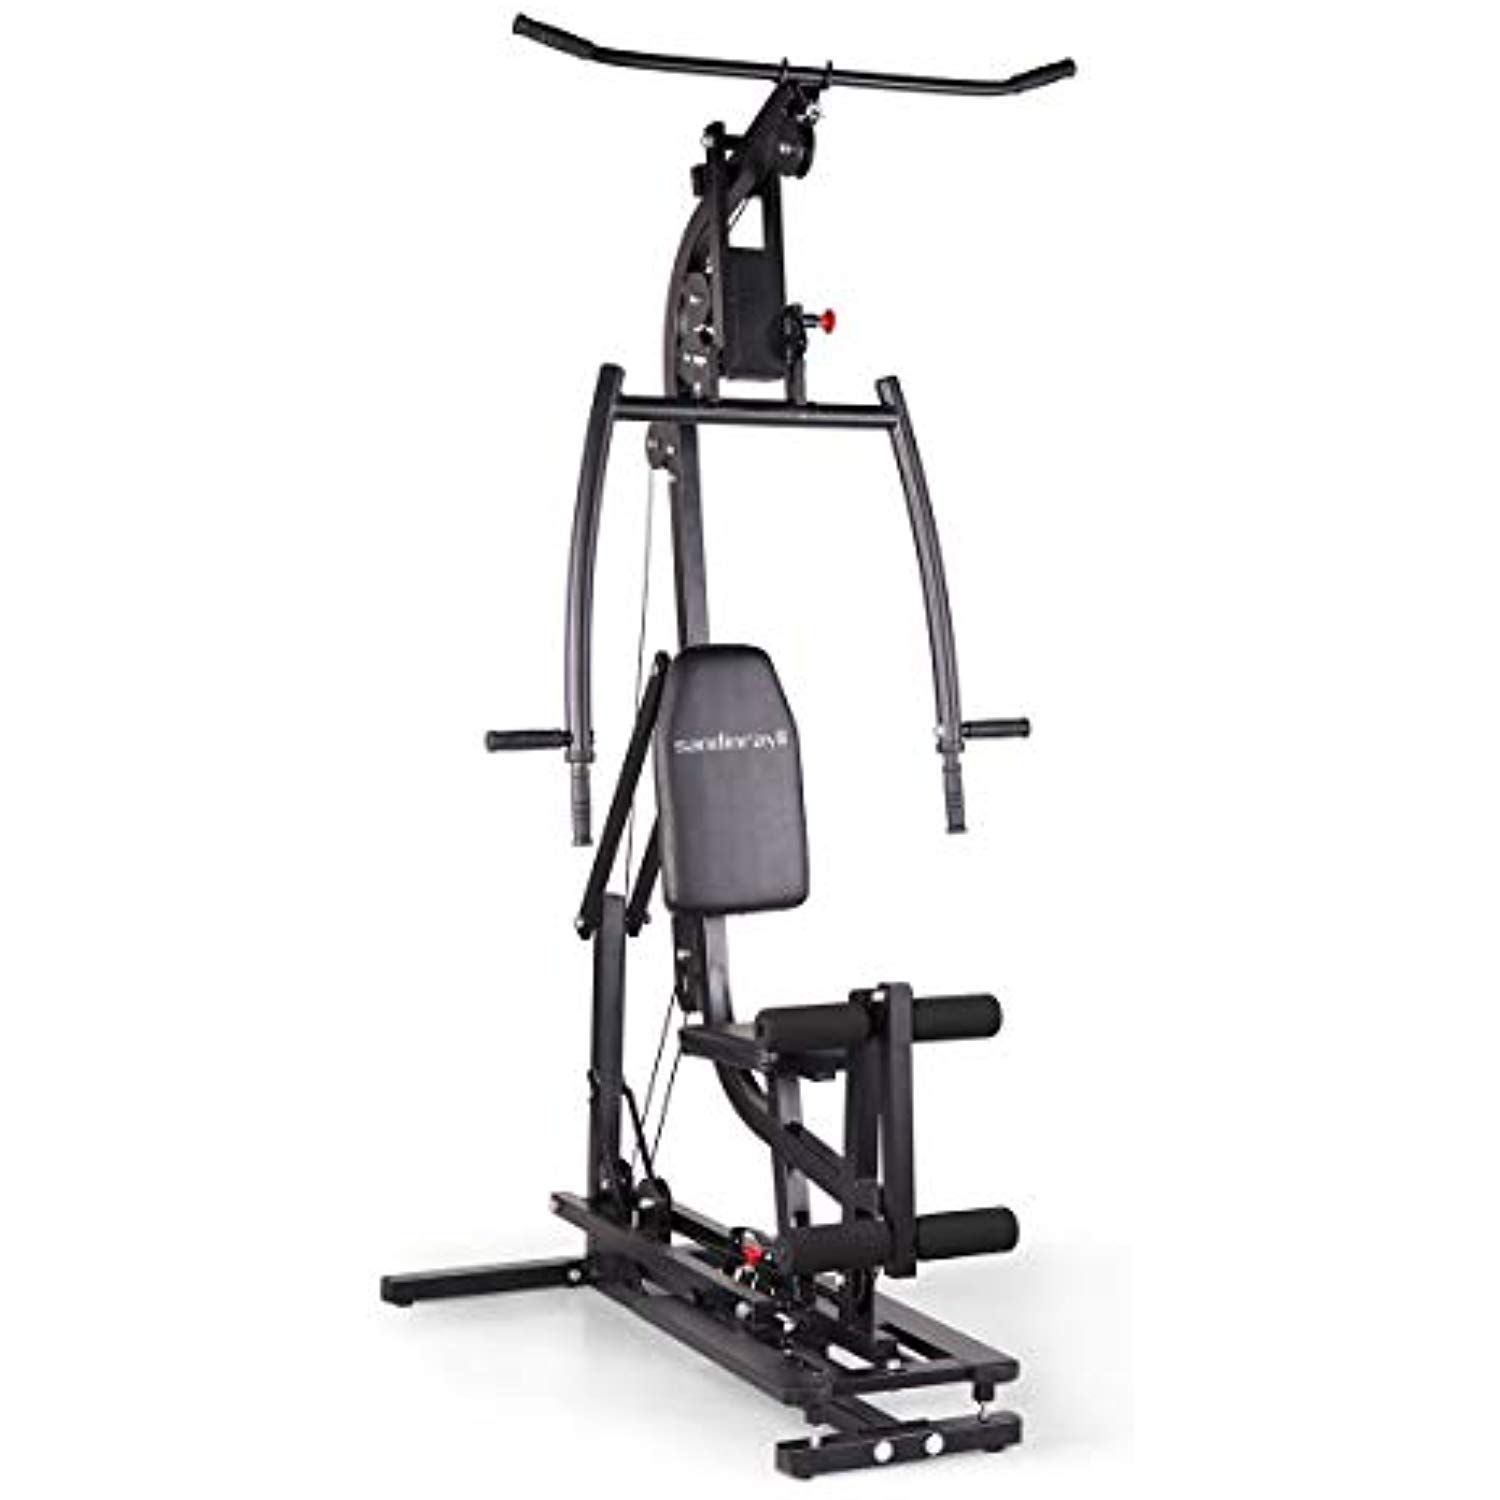 Tobbi Home Gym Weight Training Exercise Workout Equipment